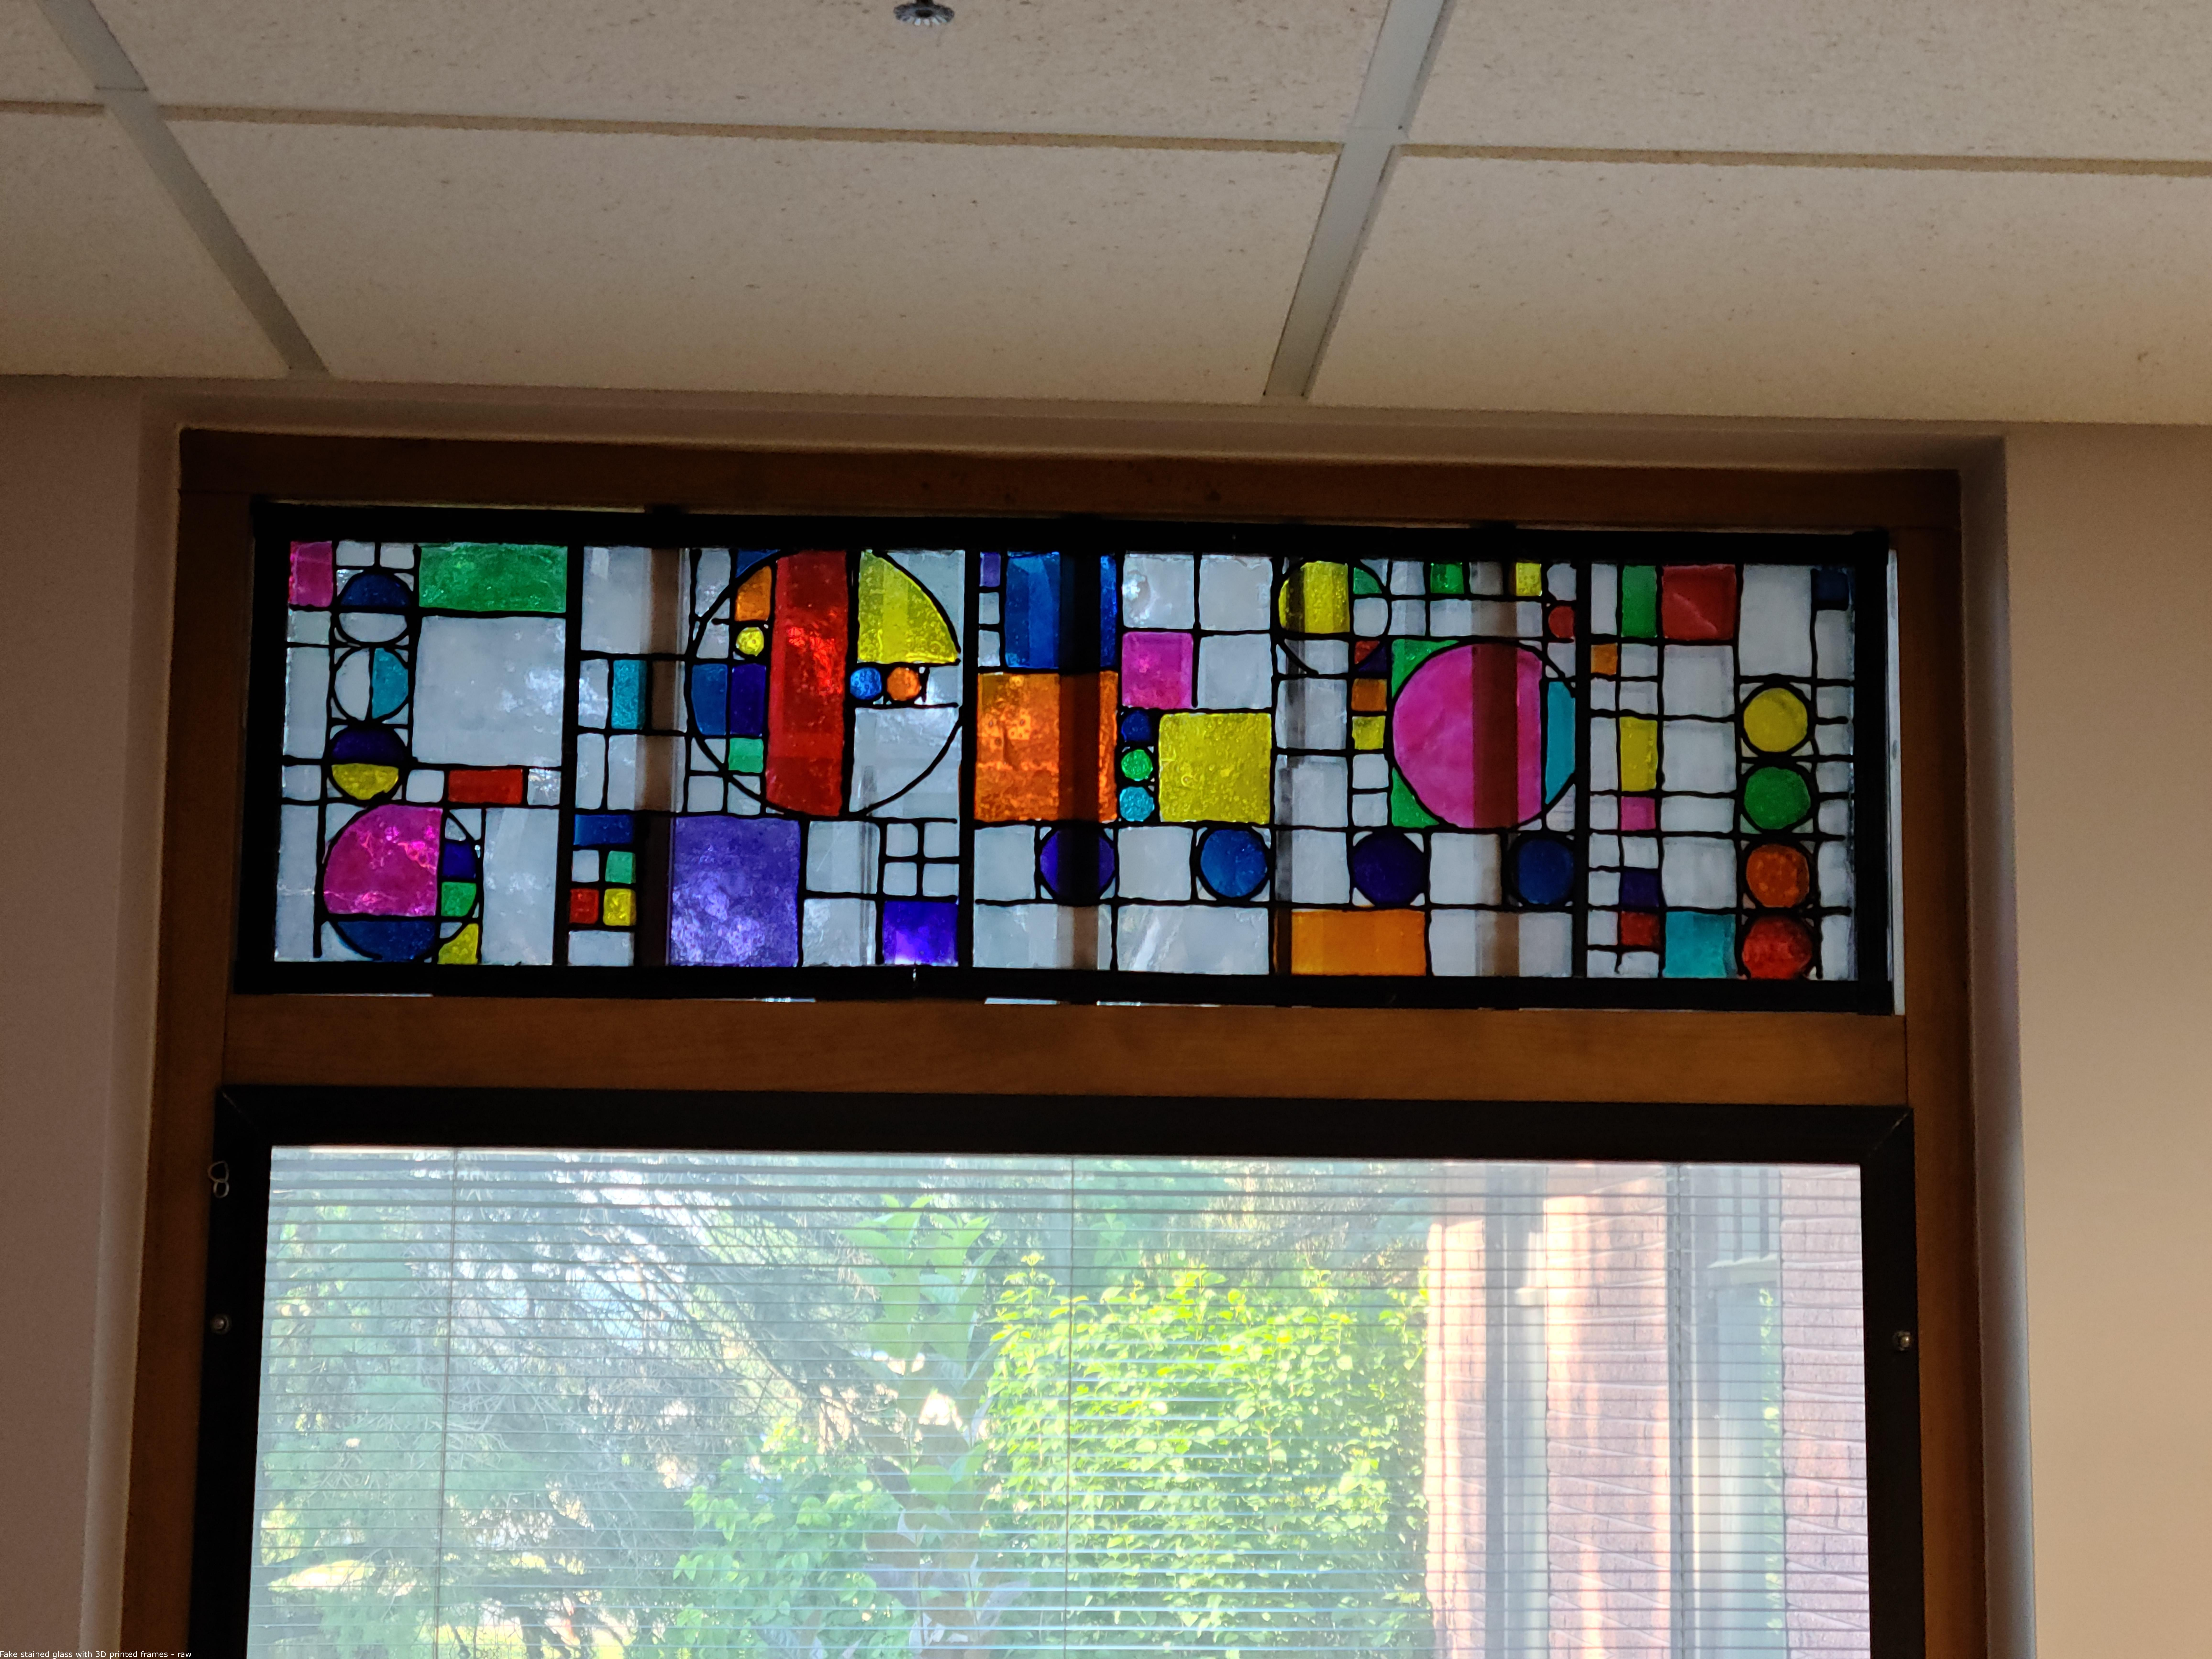 Faux stained glass with 3D printed frames